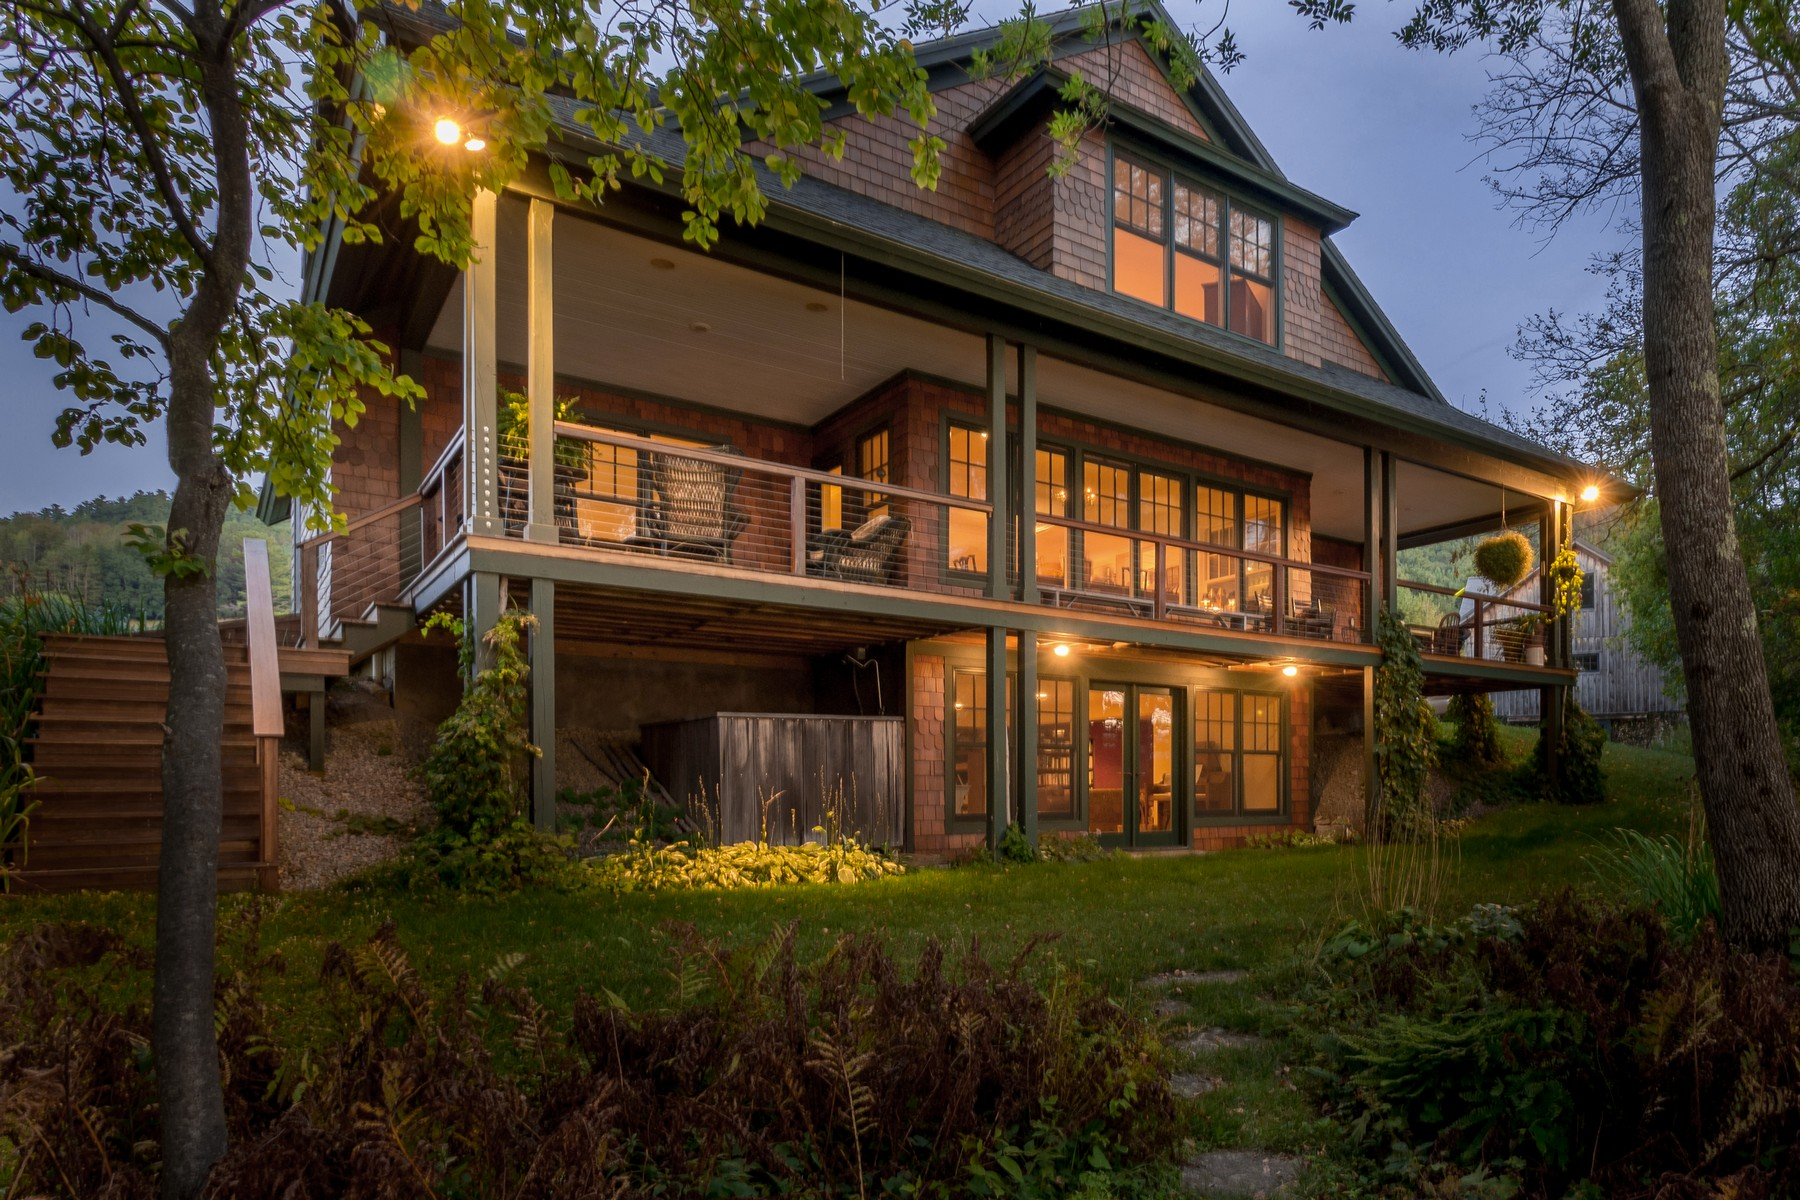 Single Family Home for Sale at Elegant and Serene Home on Otsego Lake 418 Public Landing Rd Rd Cooperstown, New York 13326 United States